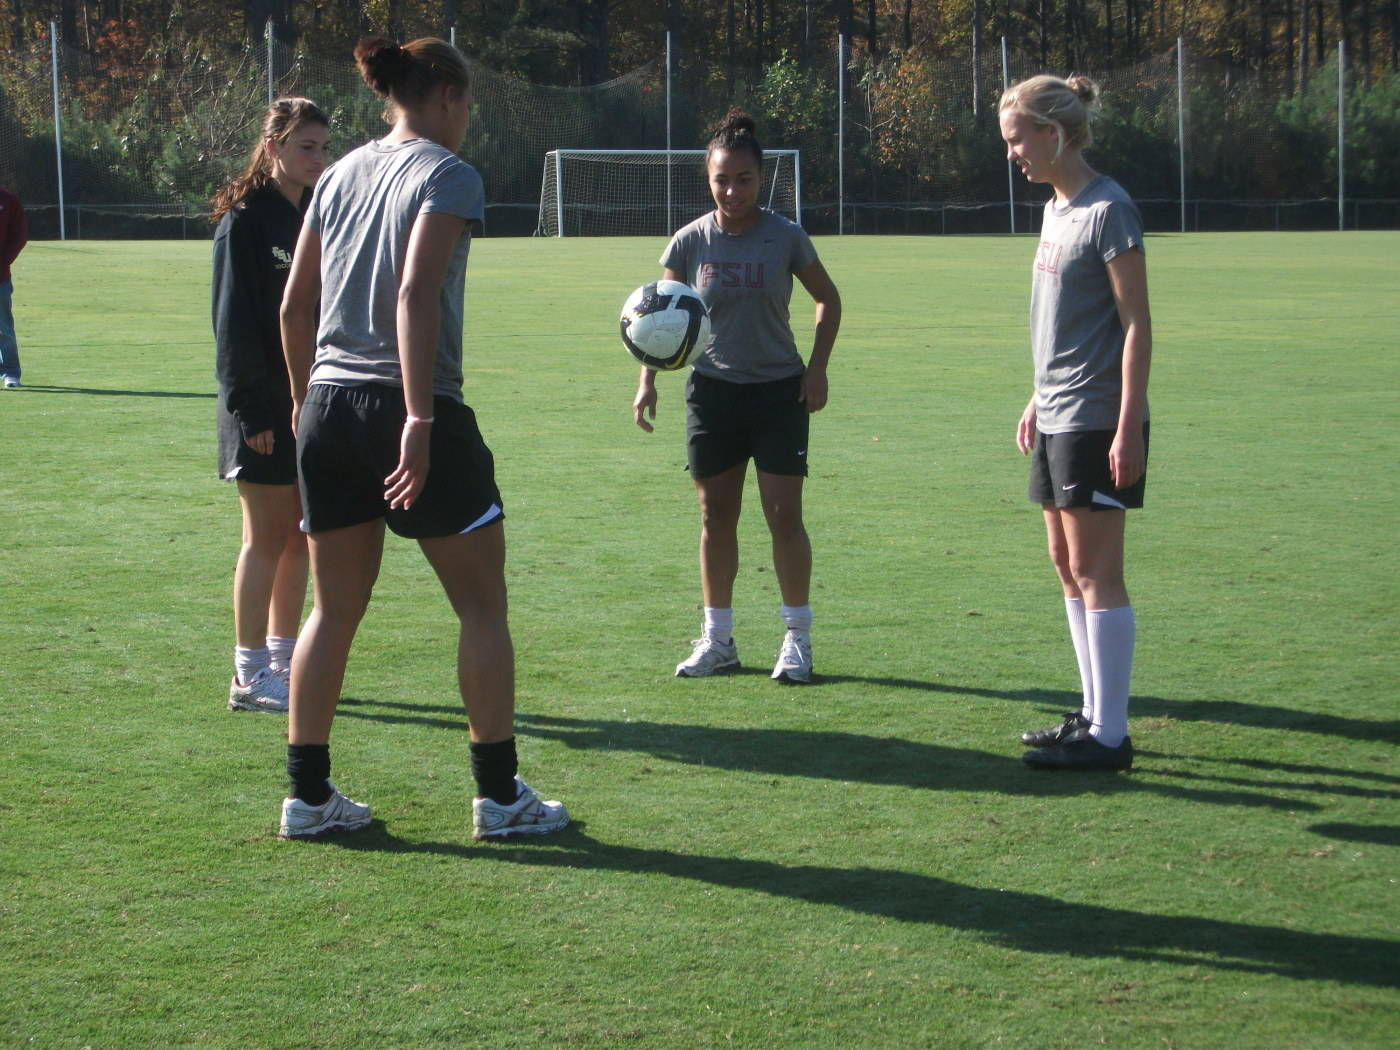 Tiana Brockway, Toni Pressley, Ella Stephan and Ines Jaurena work on their juggling skills.